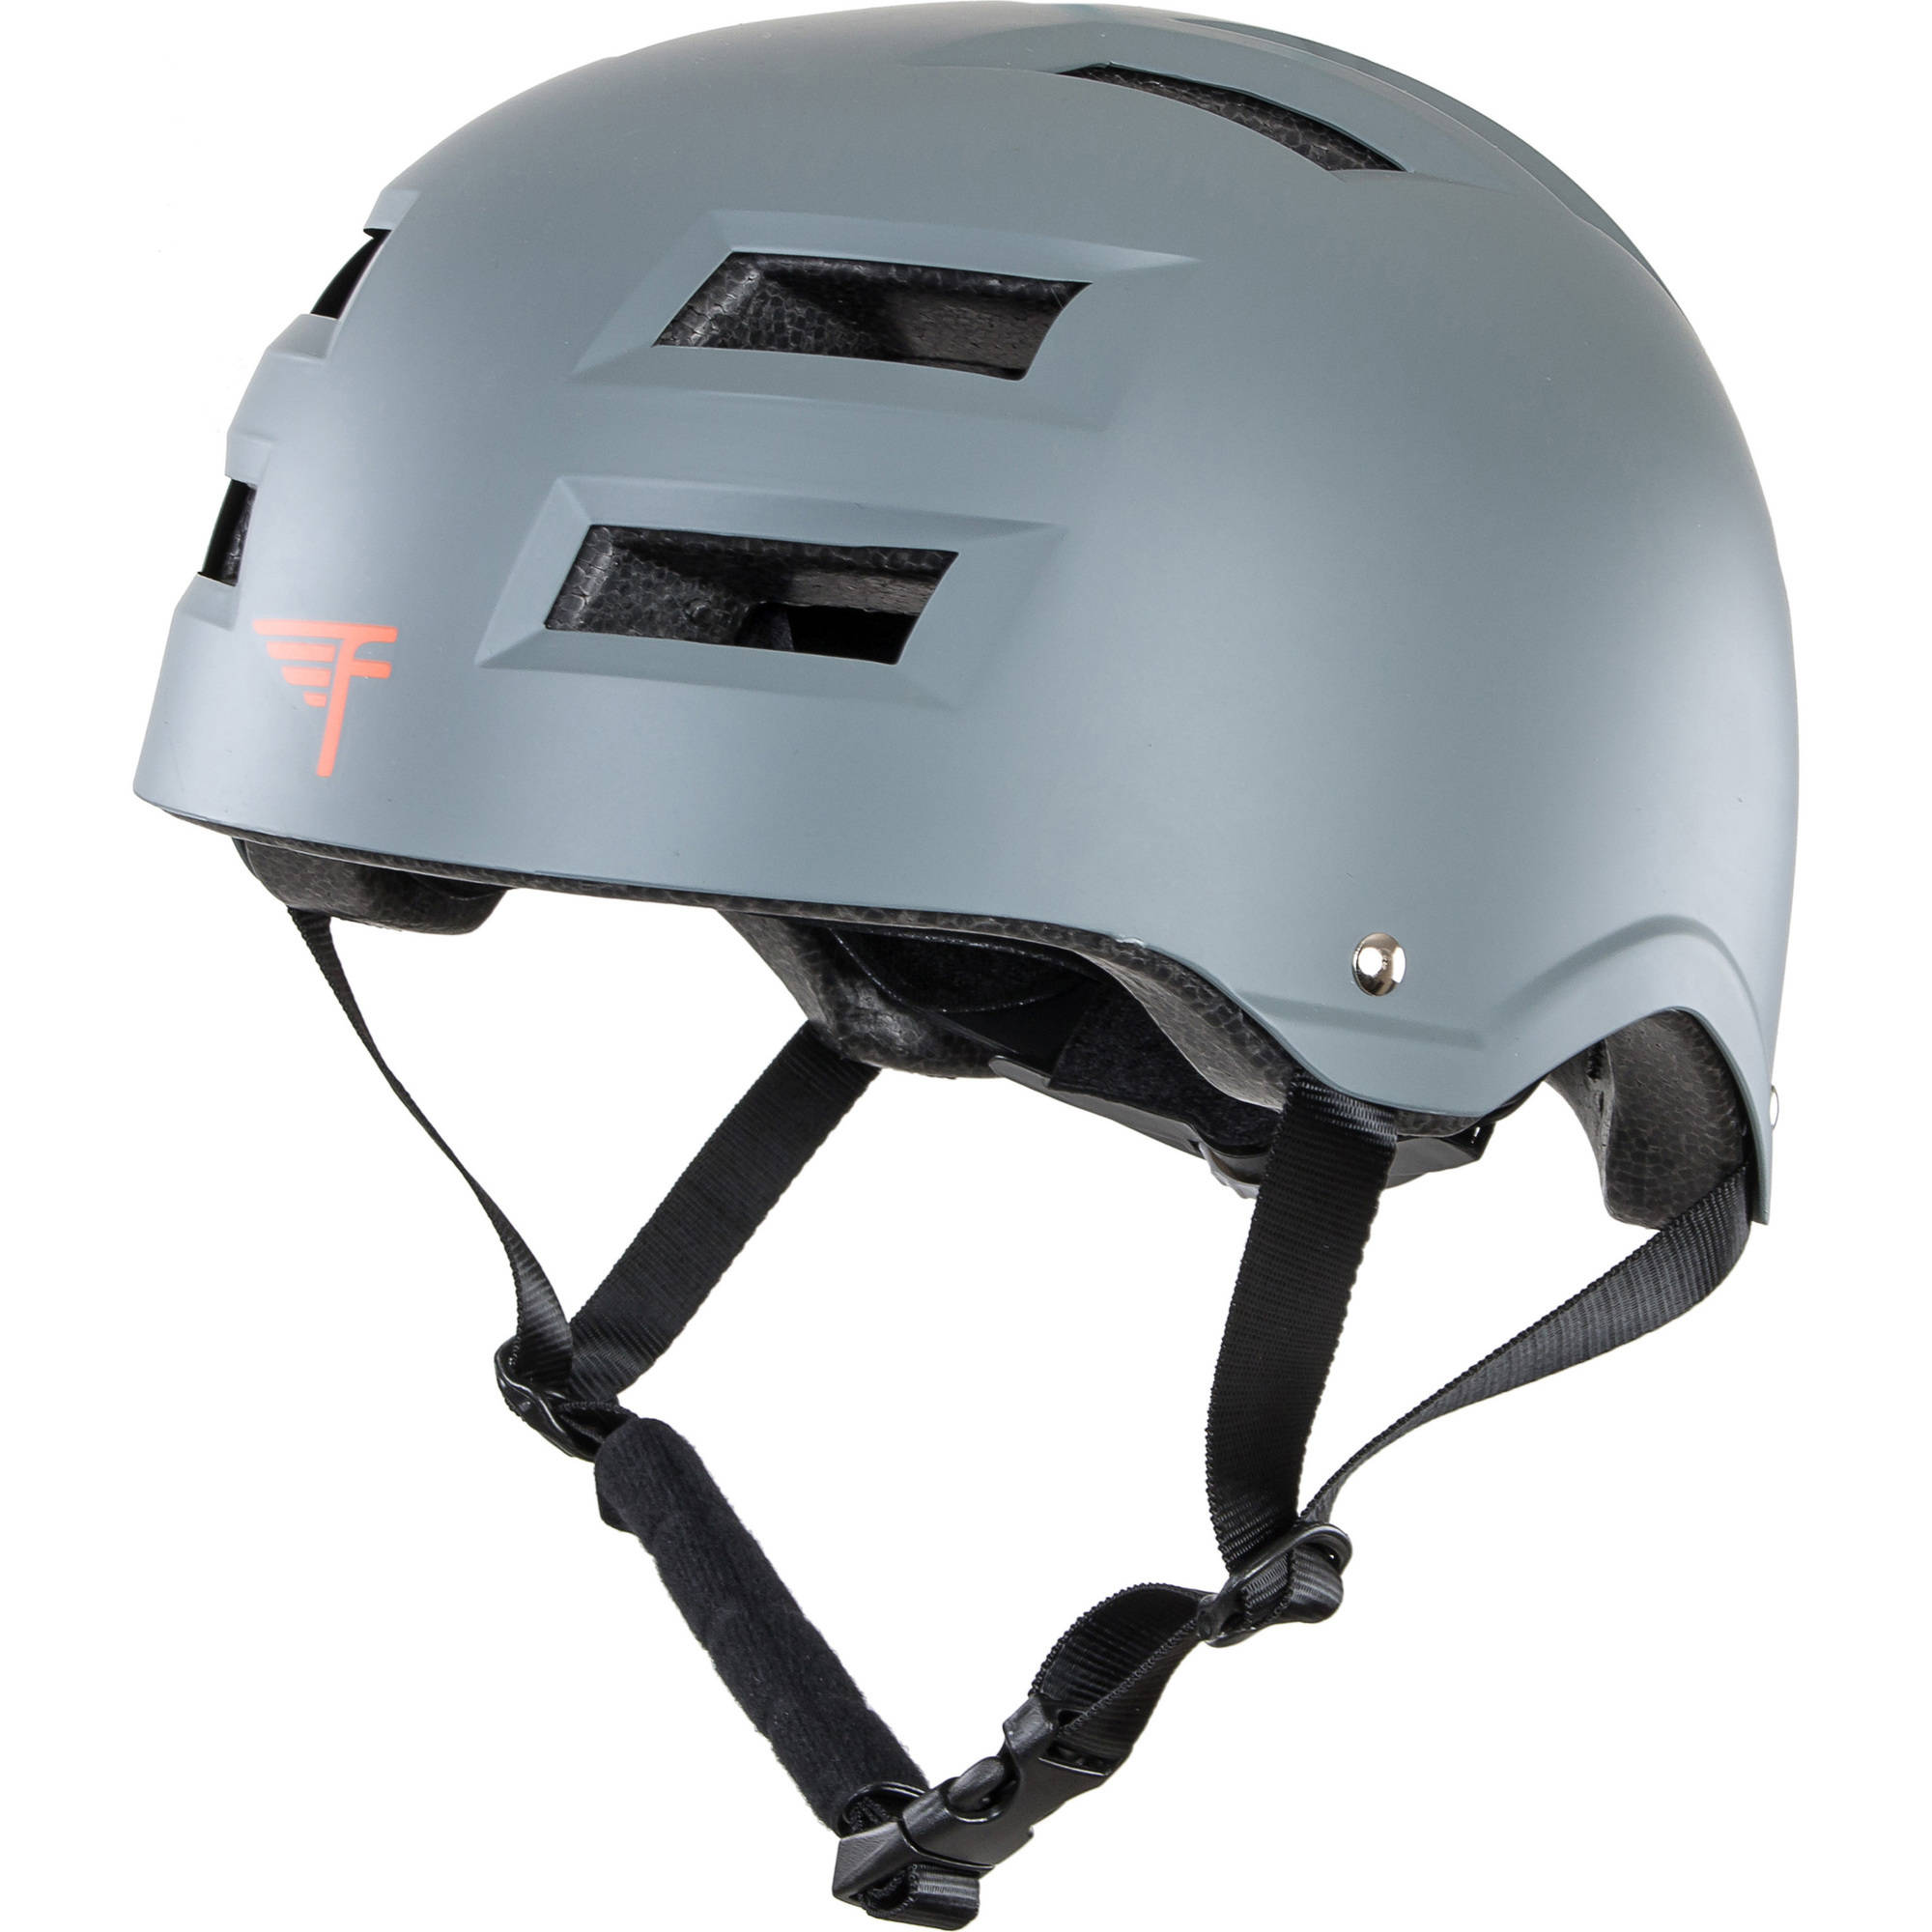 Flybar Multi Sport Helmet, Grey, L XL by Flybar